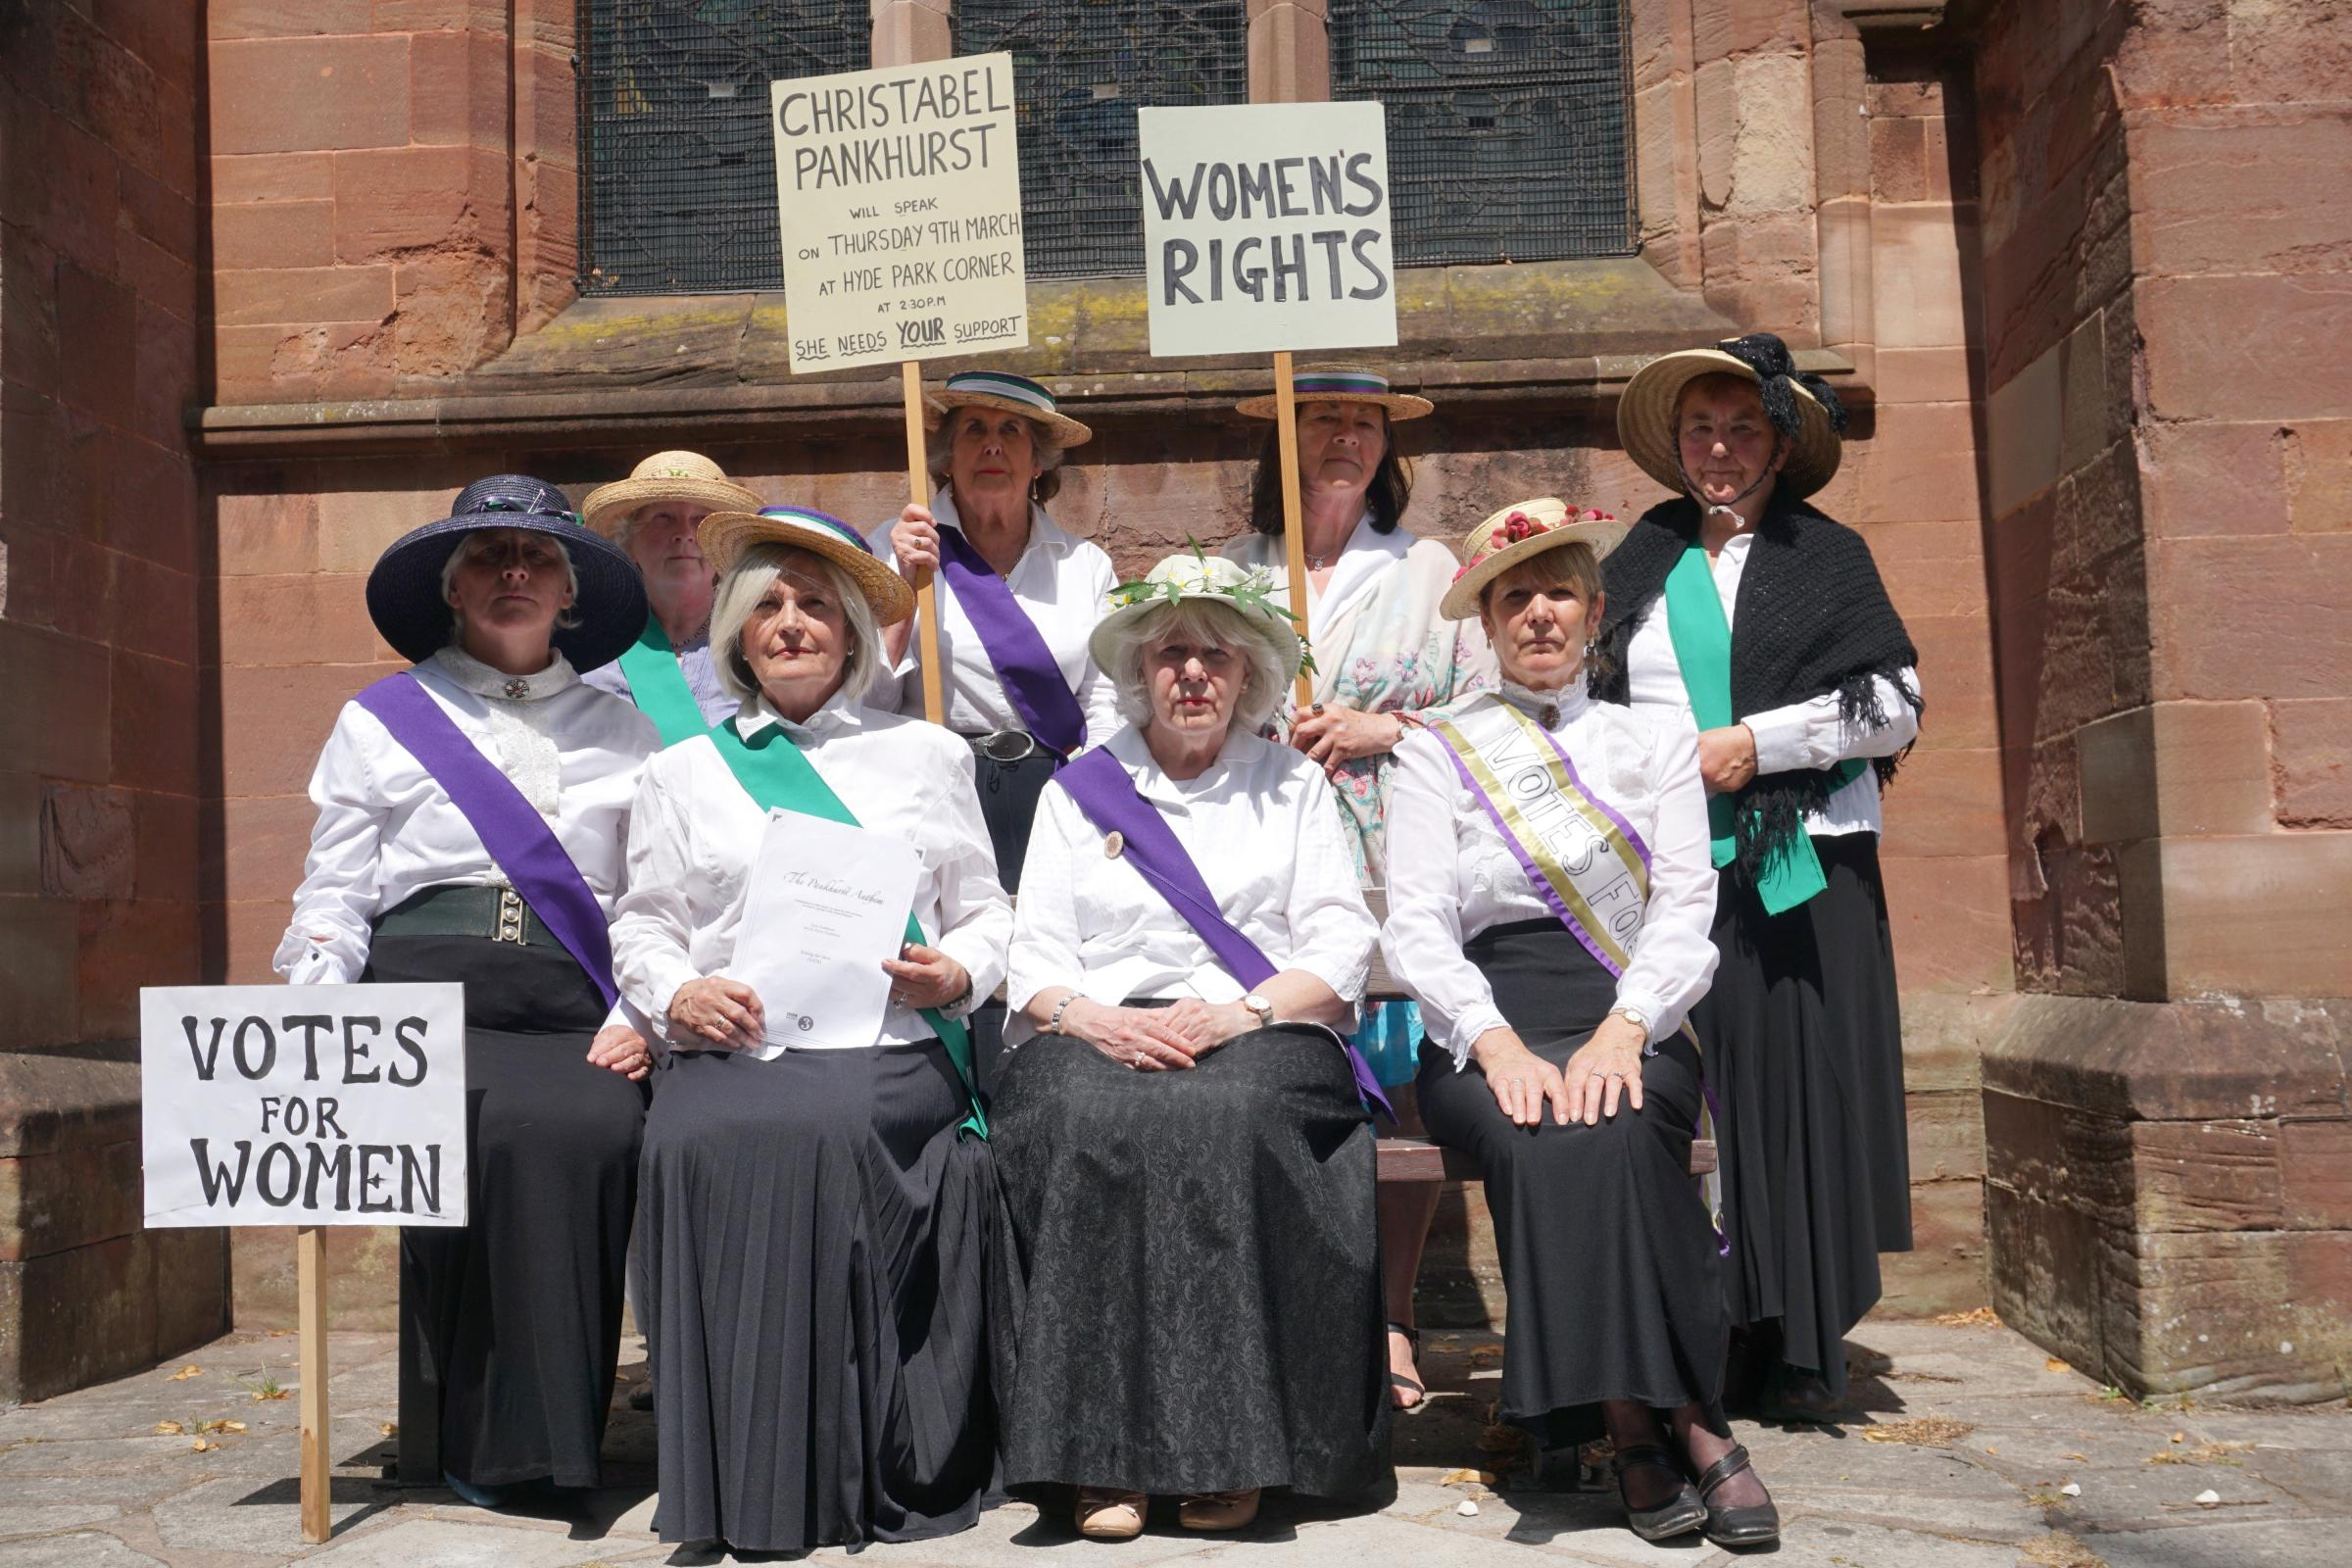 Members of Halesowen's St John's Choir will perform BBC Radio 3's 'Pankhurst Anthem' to celebrate 100 years of women's suffrage.